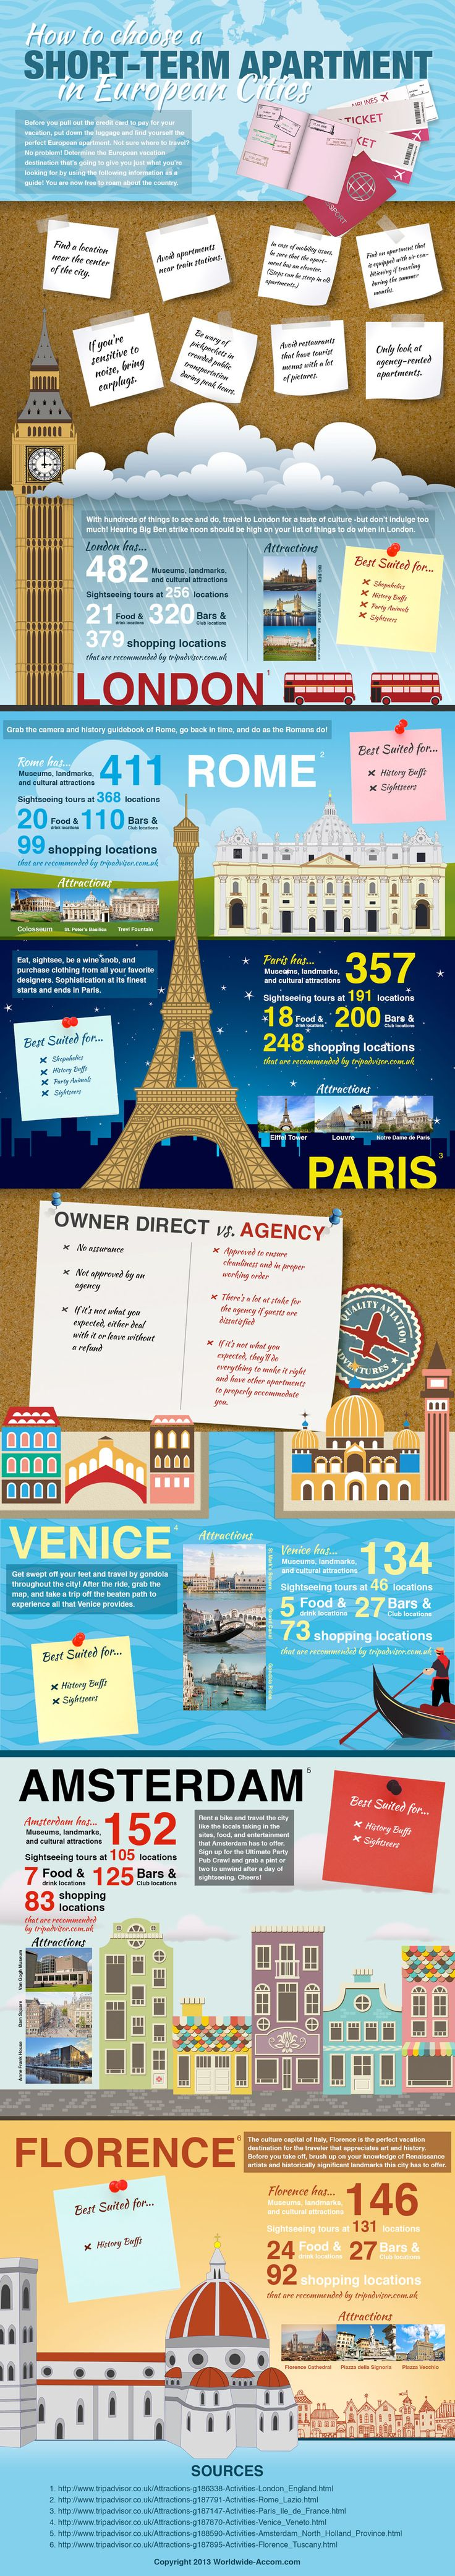 Travel Tips For Europe - How to choose a short-term apartment in European cities